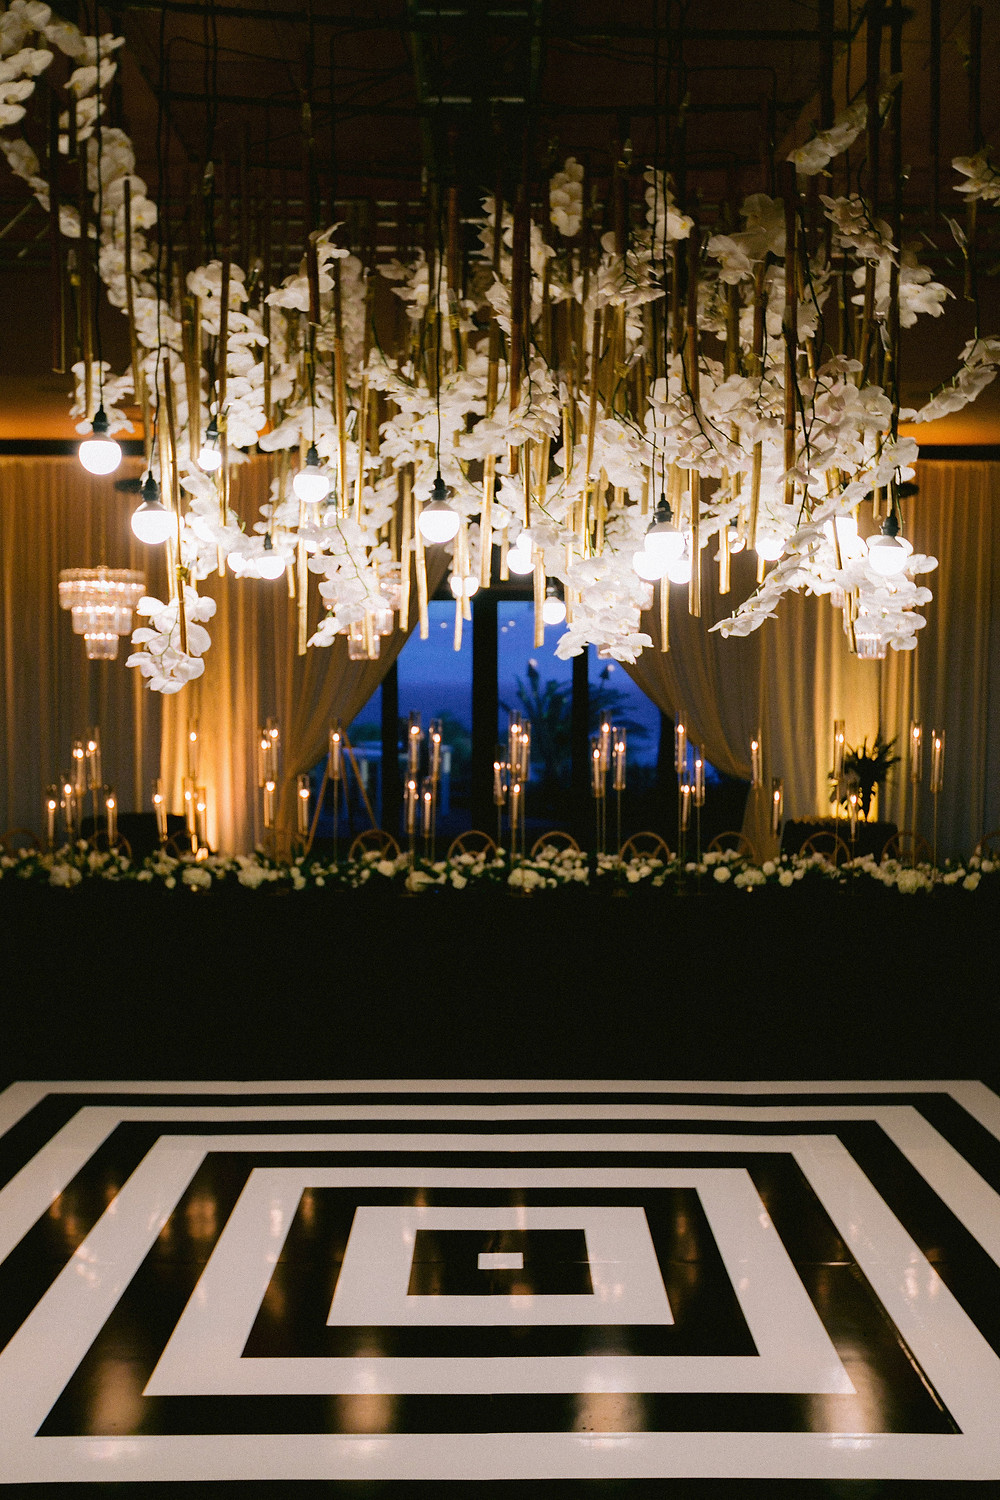 Black and white dance floor with hanging orchid lighting